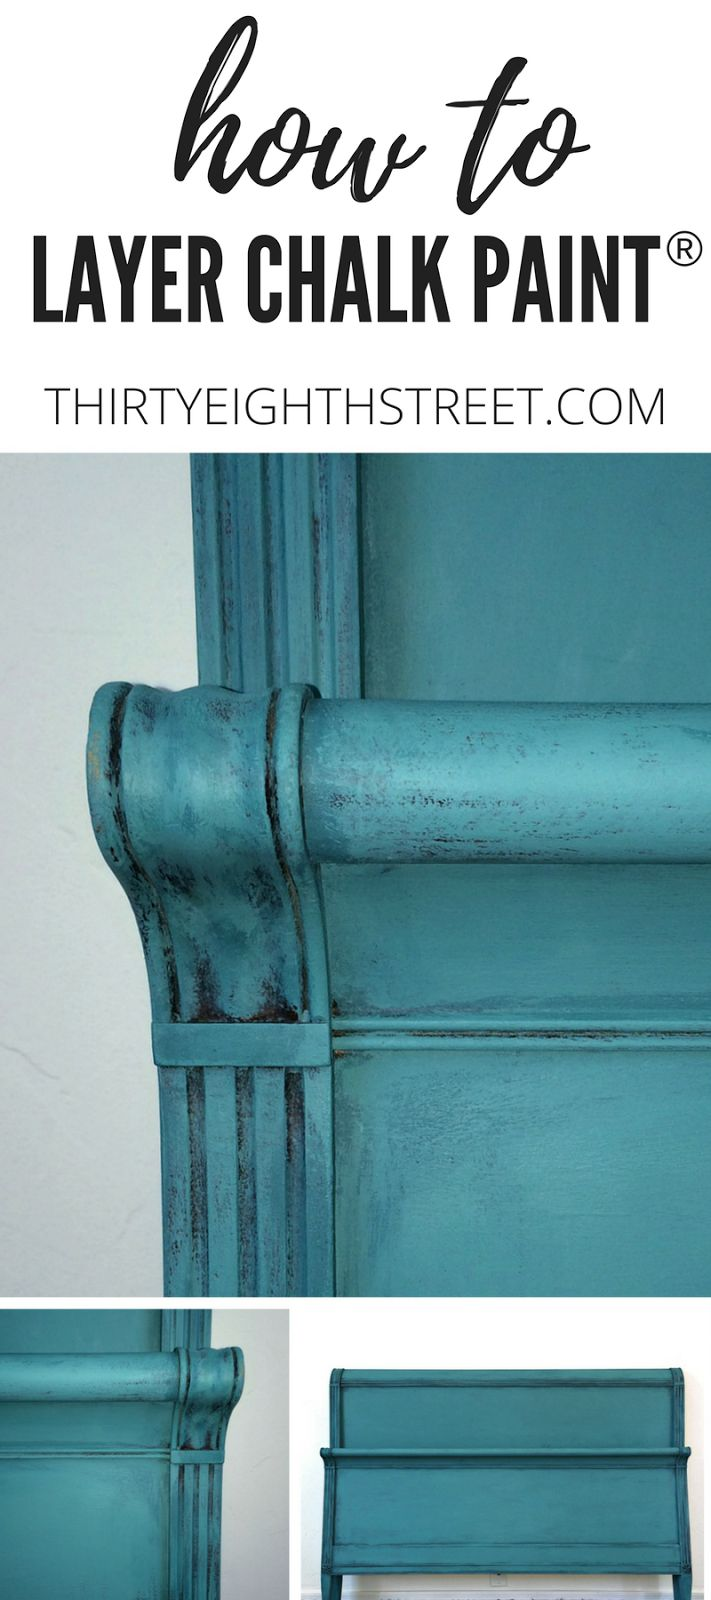 Layering Chalk Paint Techniques To Create The Perfect Turquoise Patina. Chalk Paint Tutorial | Thirty Eighth Street